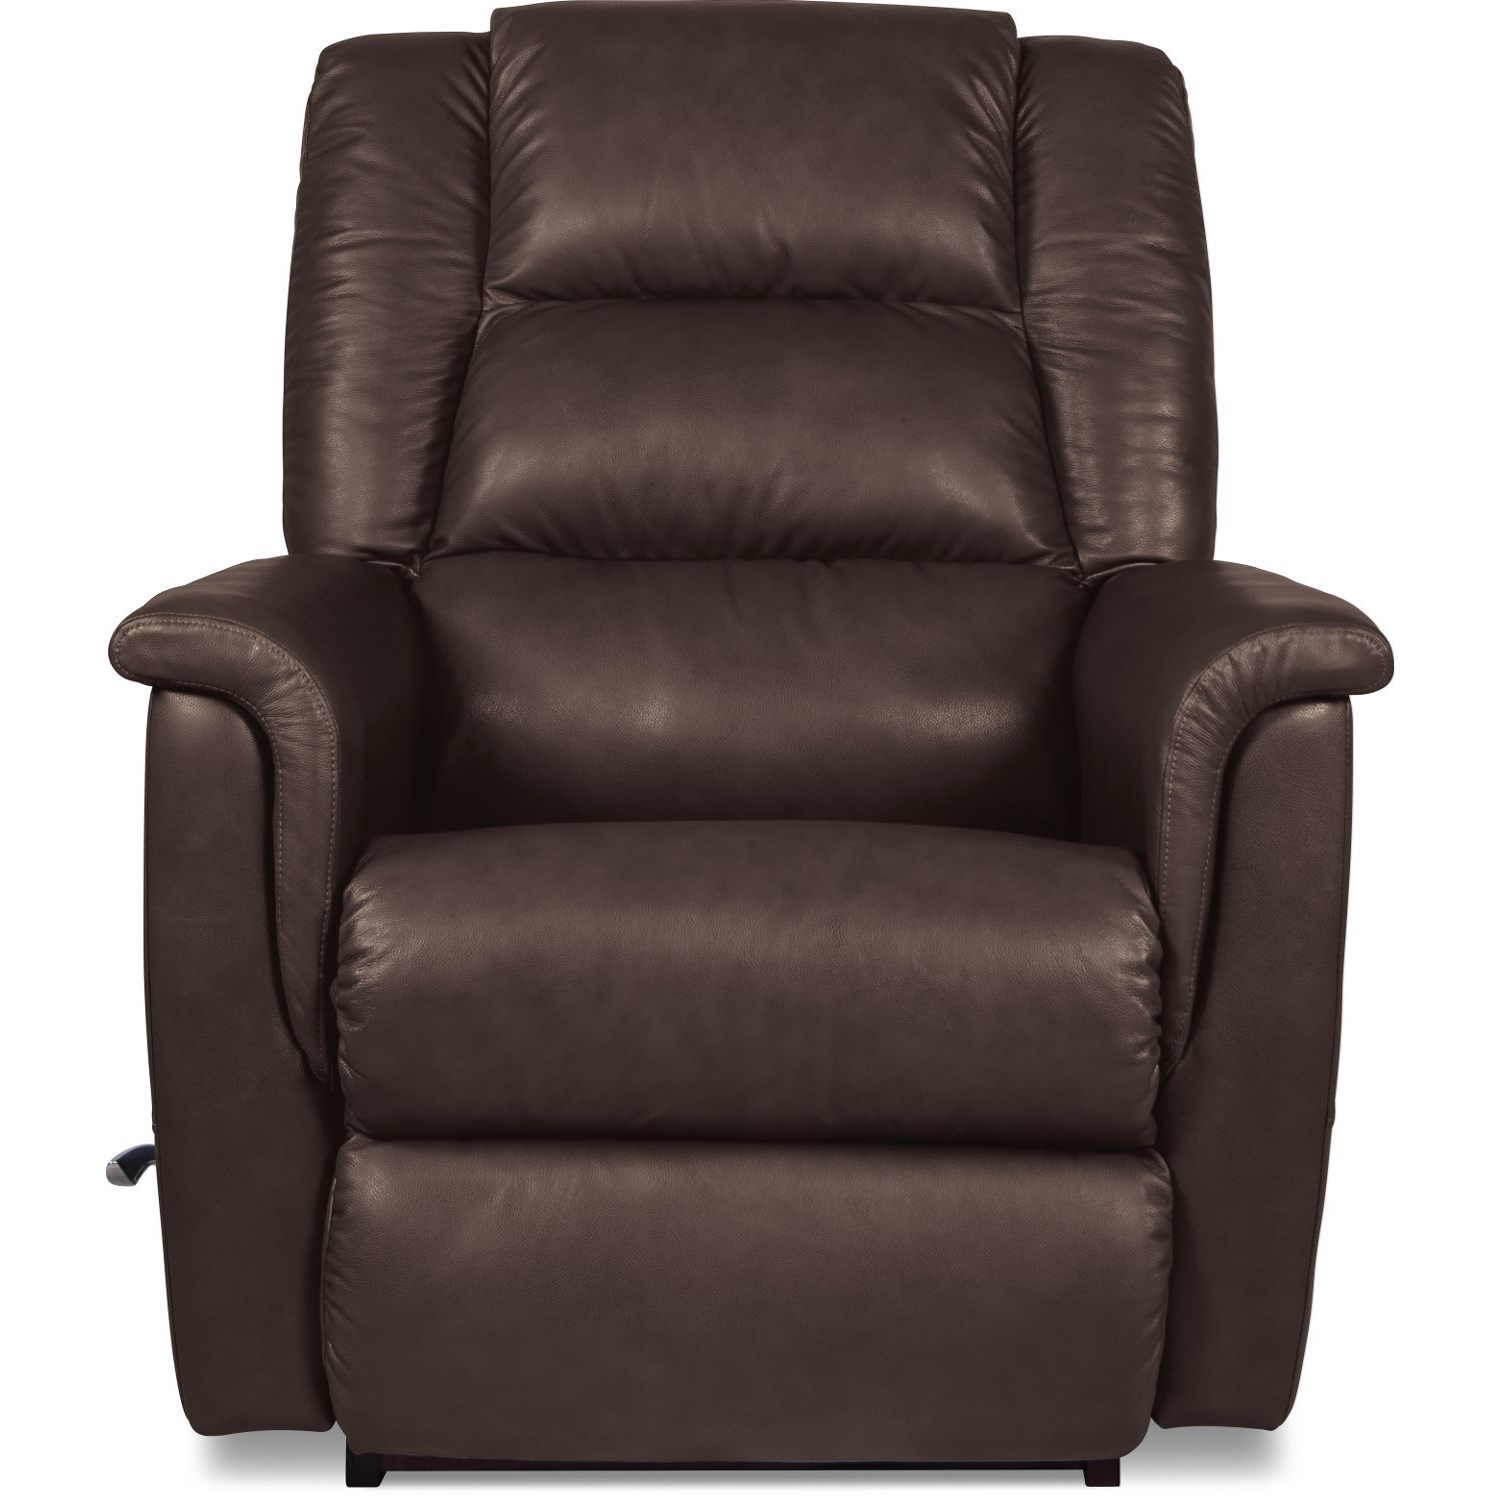 Casual Power Wall Saver Recliner w/ USB Port